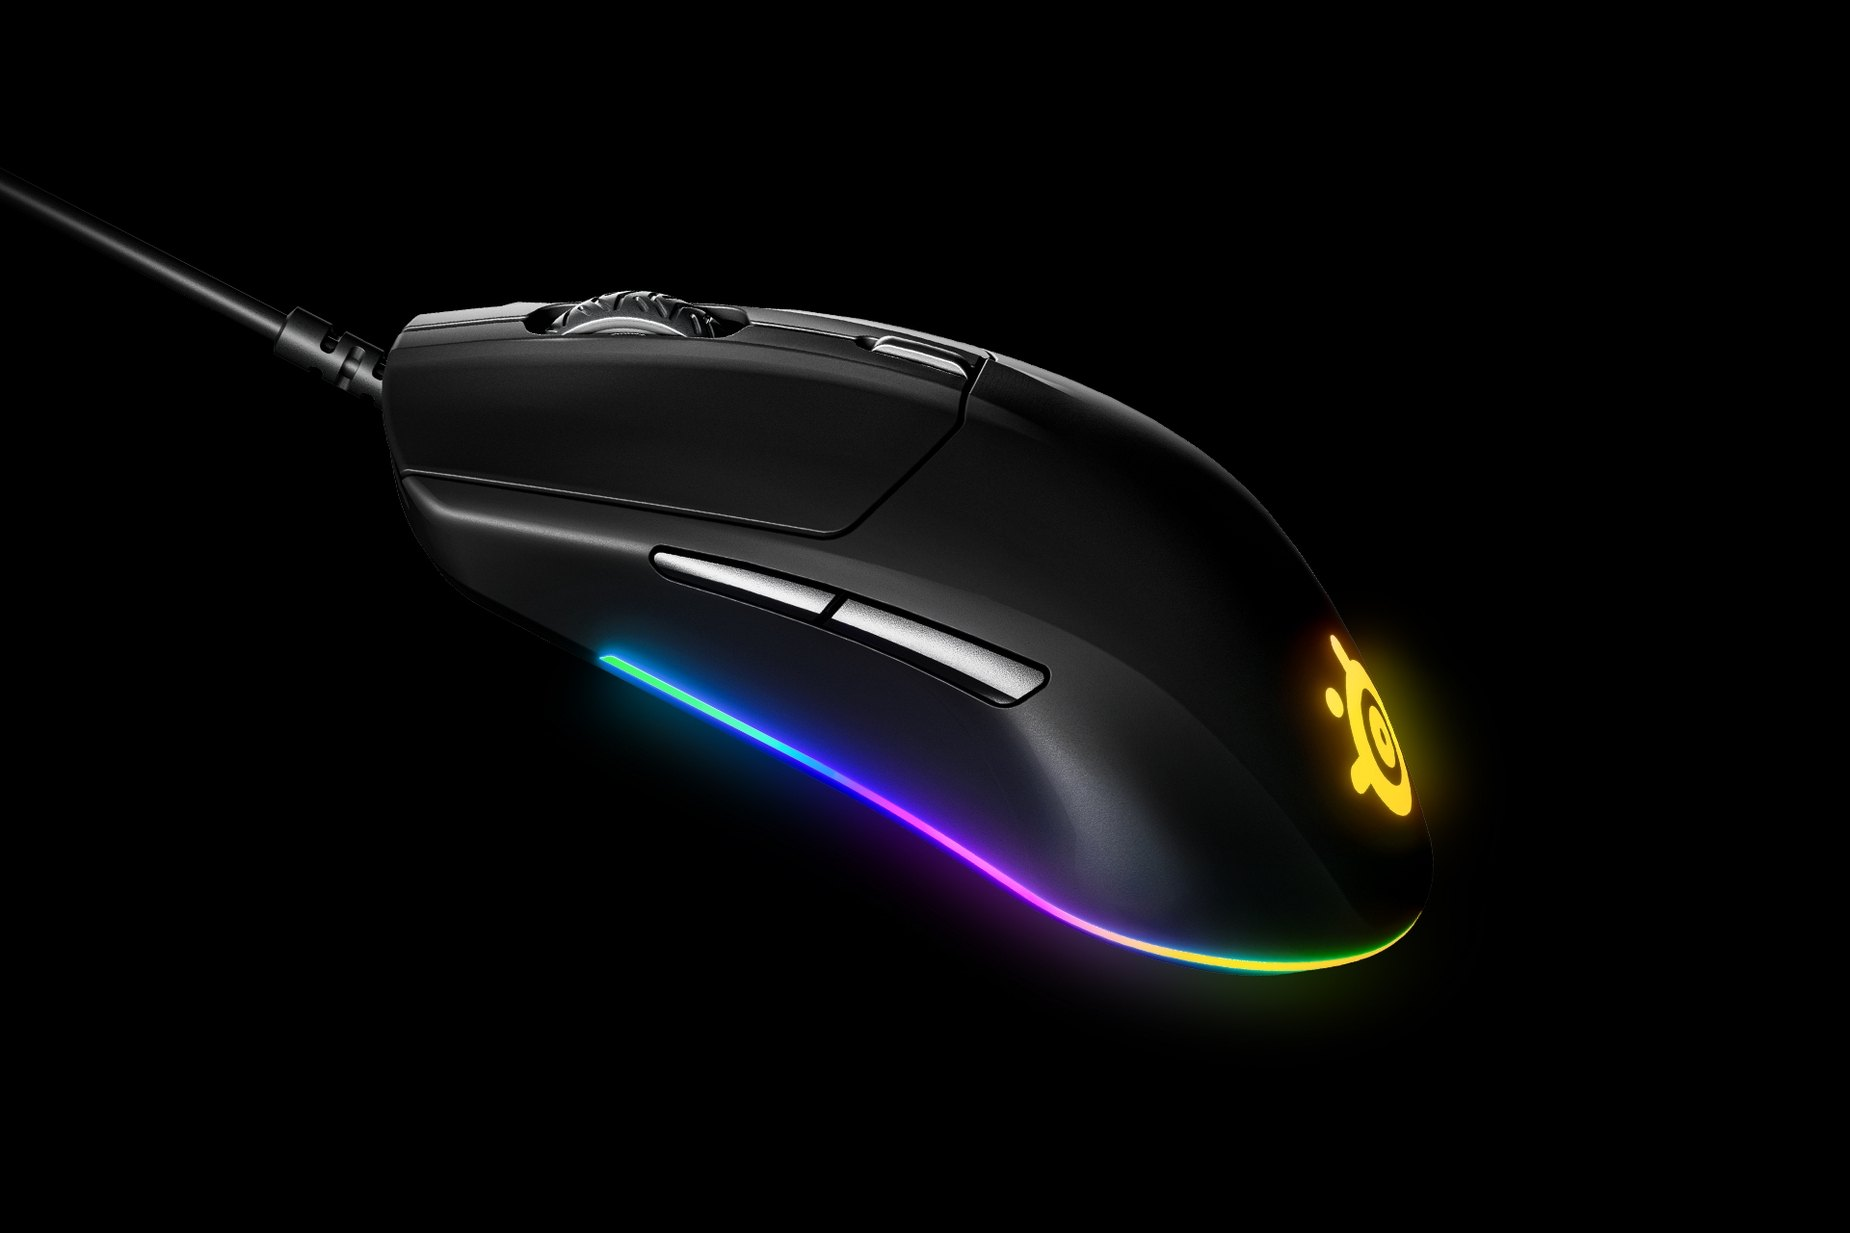 Rival 3 gaming mouse side view